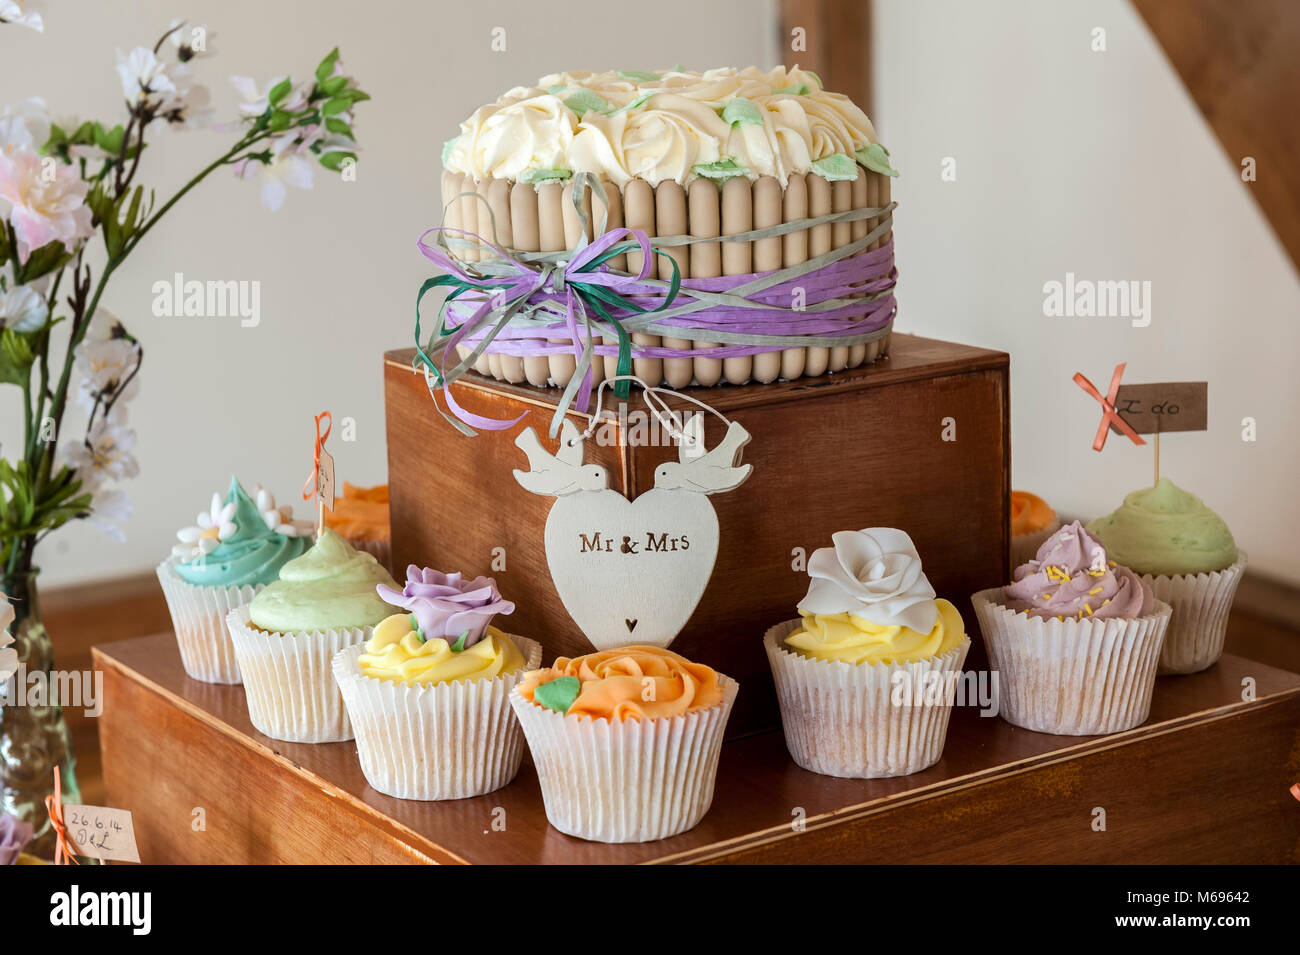 Cup Cakes Wedding Cake Photos Cup Cakes Wedding Cake Images Alamy